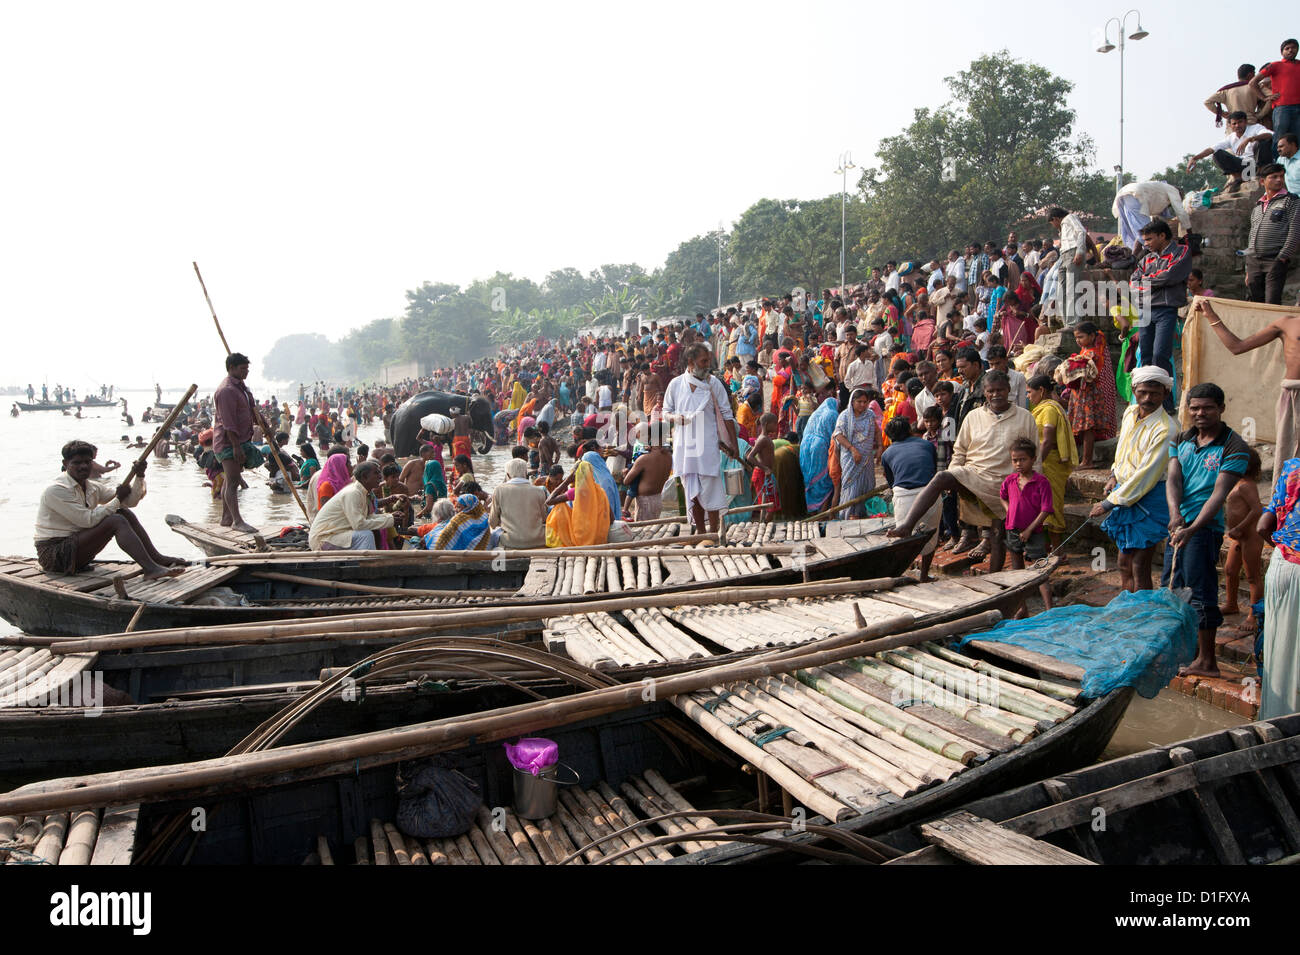 Wooden ferryboats used to take people across the River Ganges between Patna and Sonepur Cattle Fair, Bihar, India - Stock Image